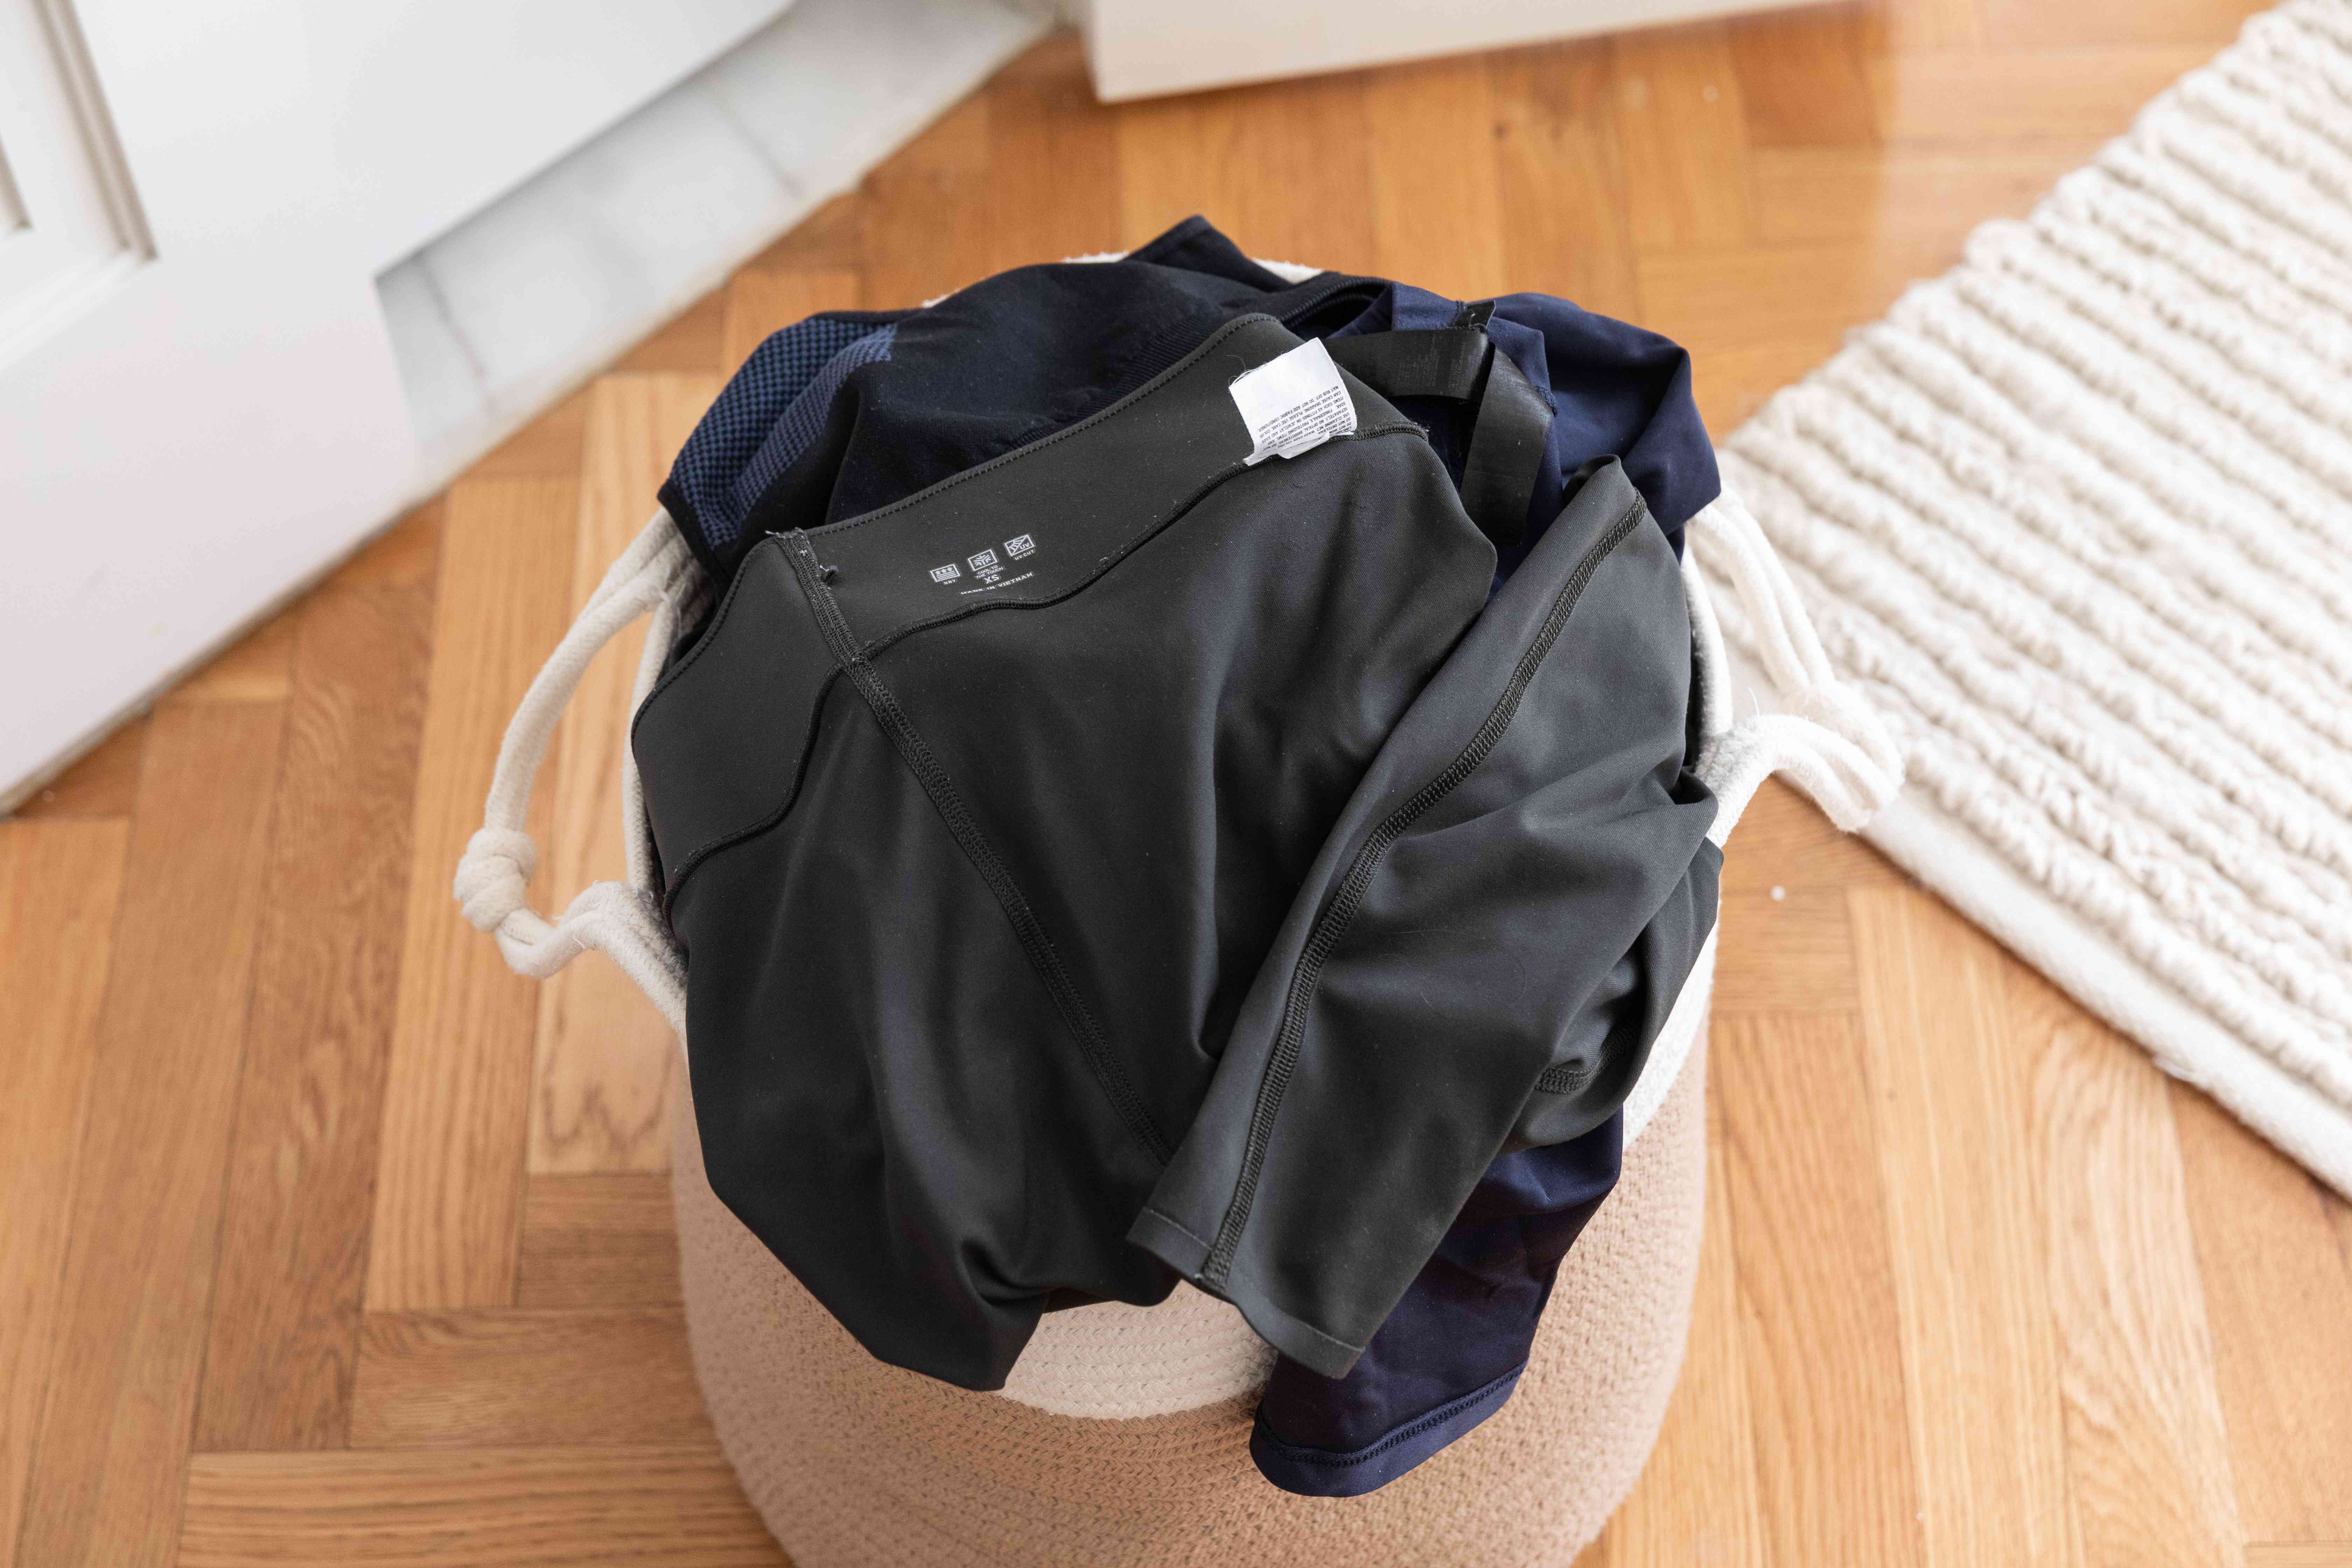 Clothes hamper filled with yoga pants turned inside out for cleaning